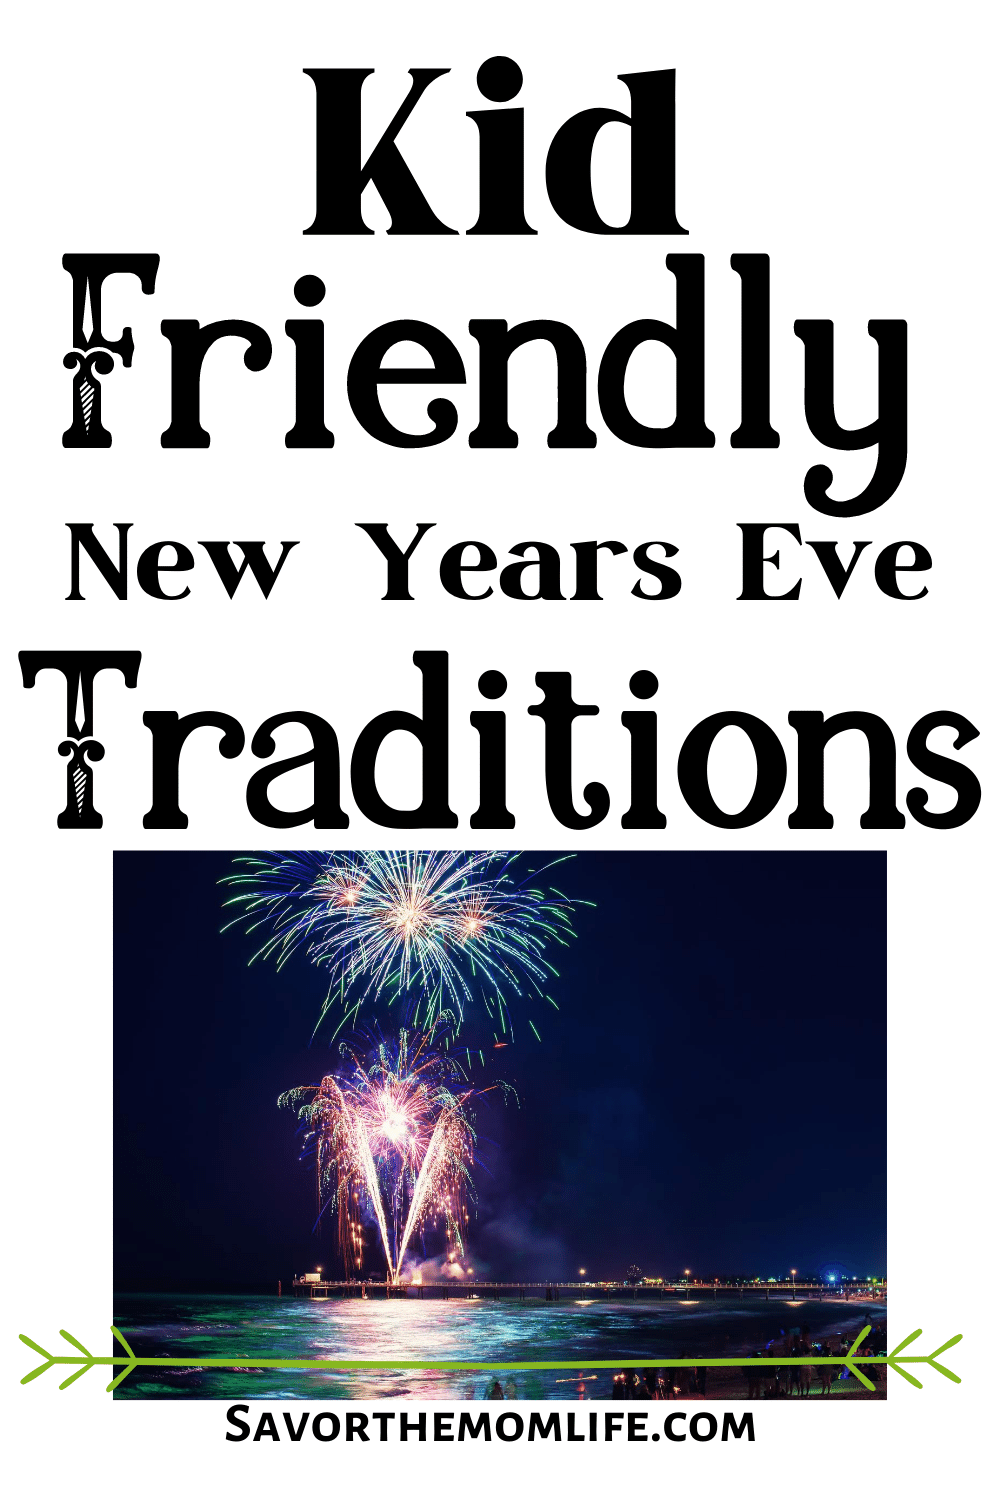 KidFriendly New Years Eve Traditions and Activities